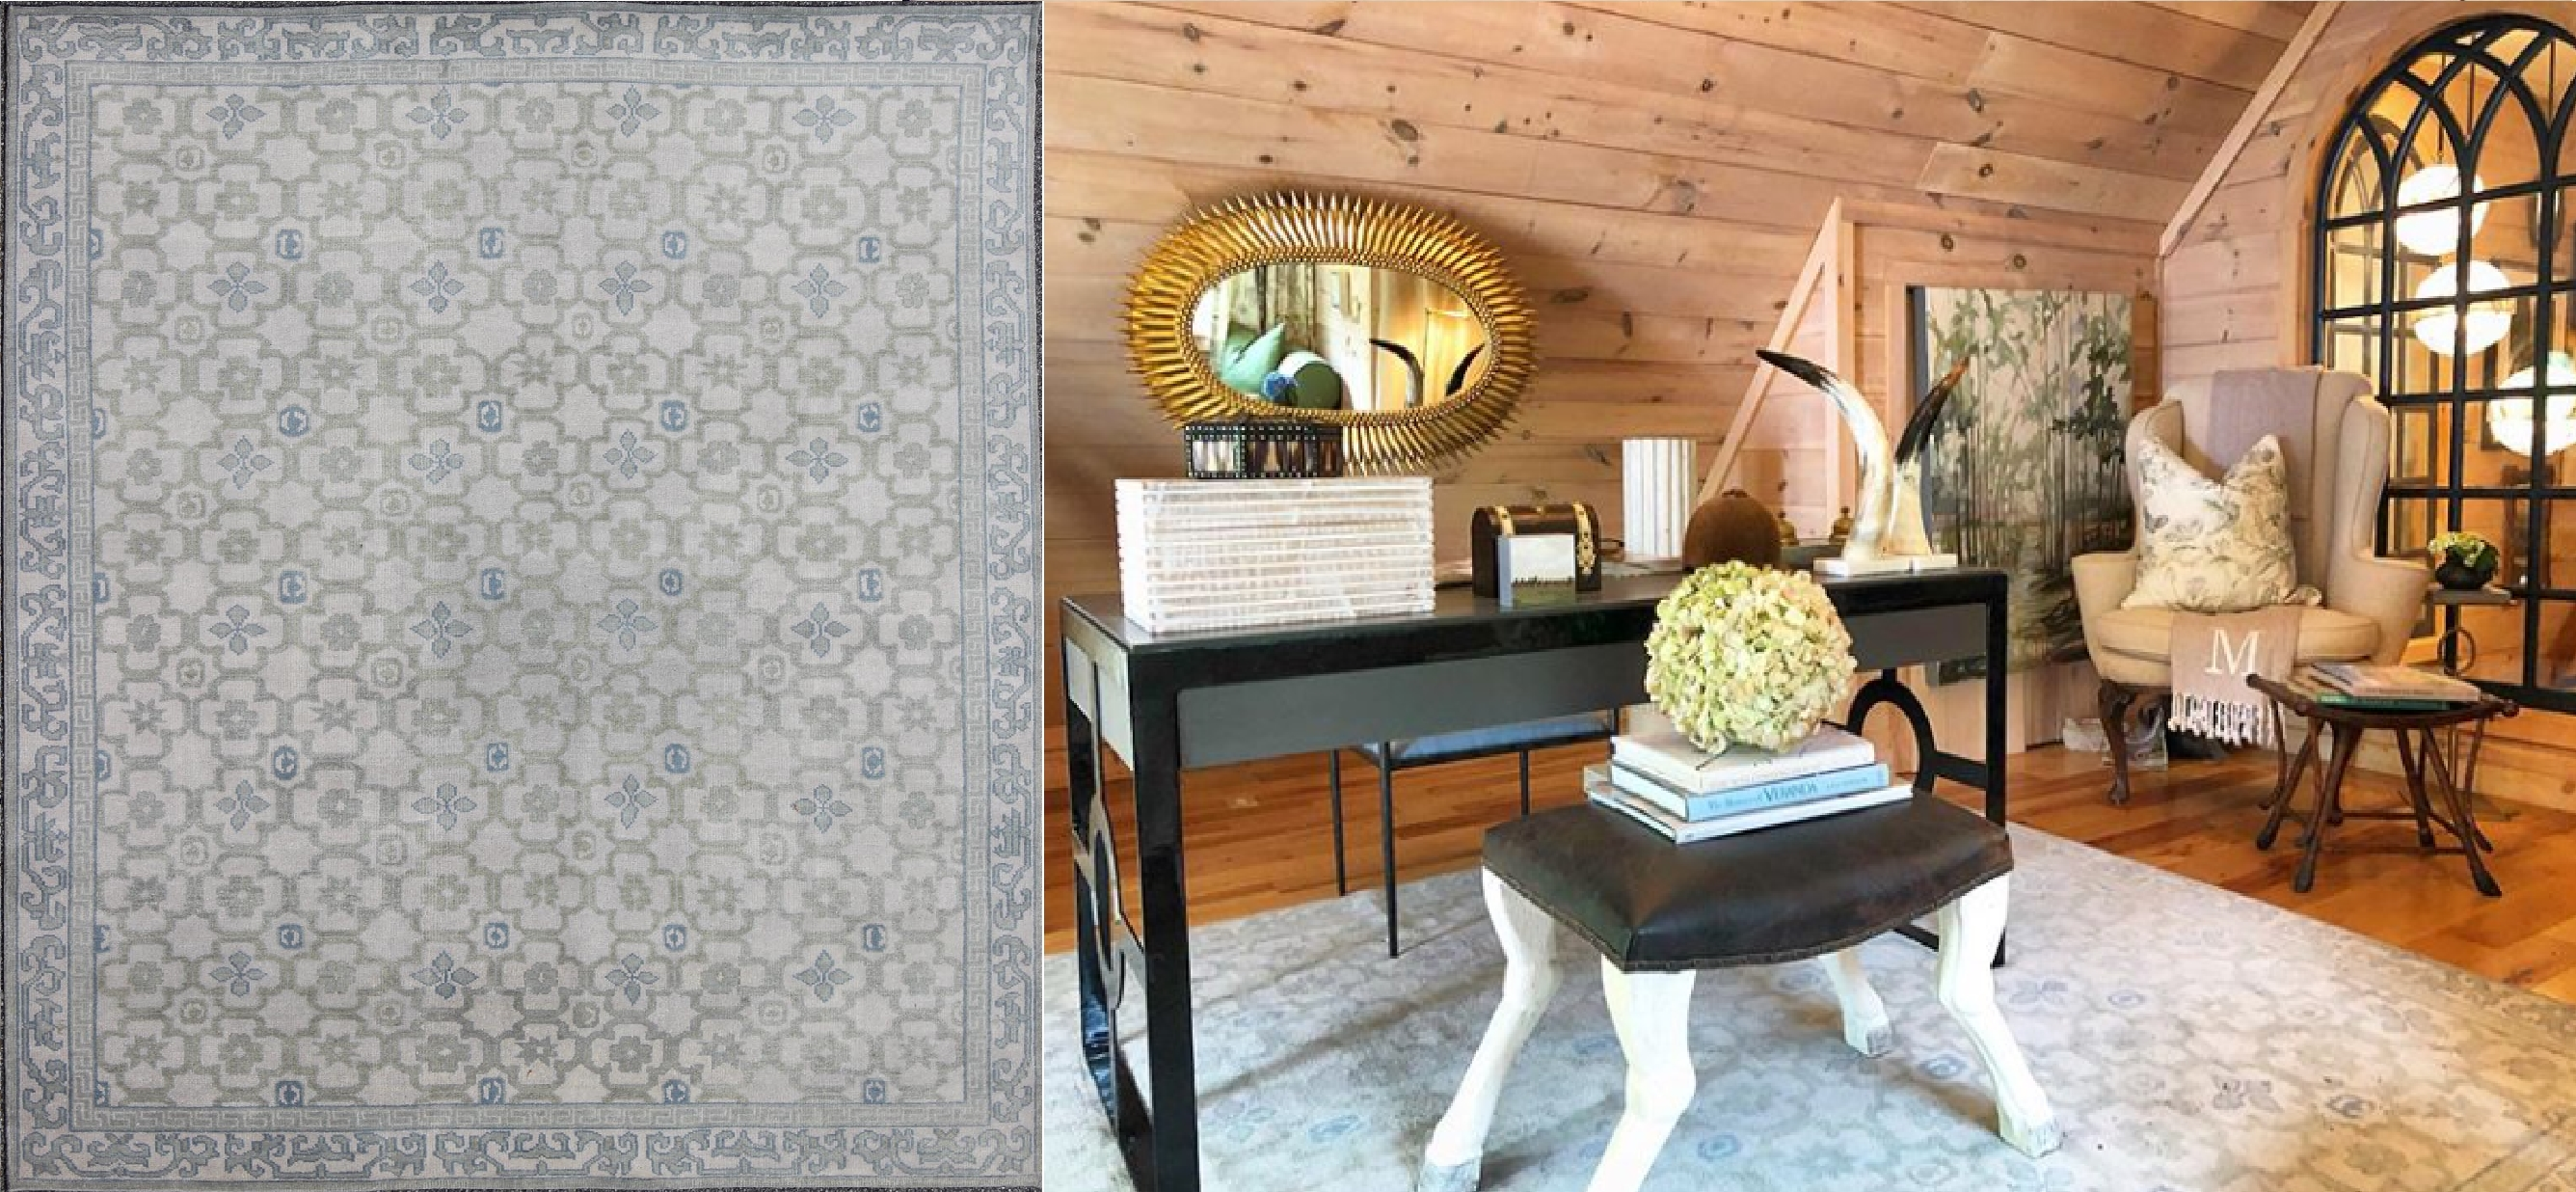 Cashiers Showhouse, Olive Interiors, Keivan Woven Arts, Khotan, Khotan rug, Ivory, Gray, All-Over Design, Geometric Shapes, Study, Interior Design